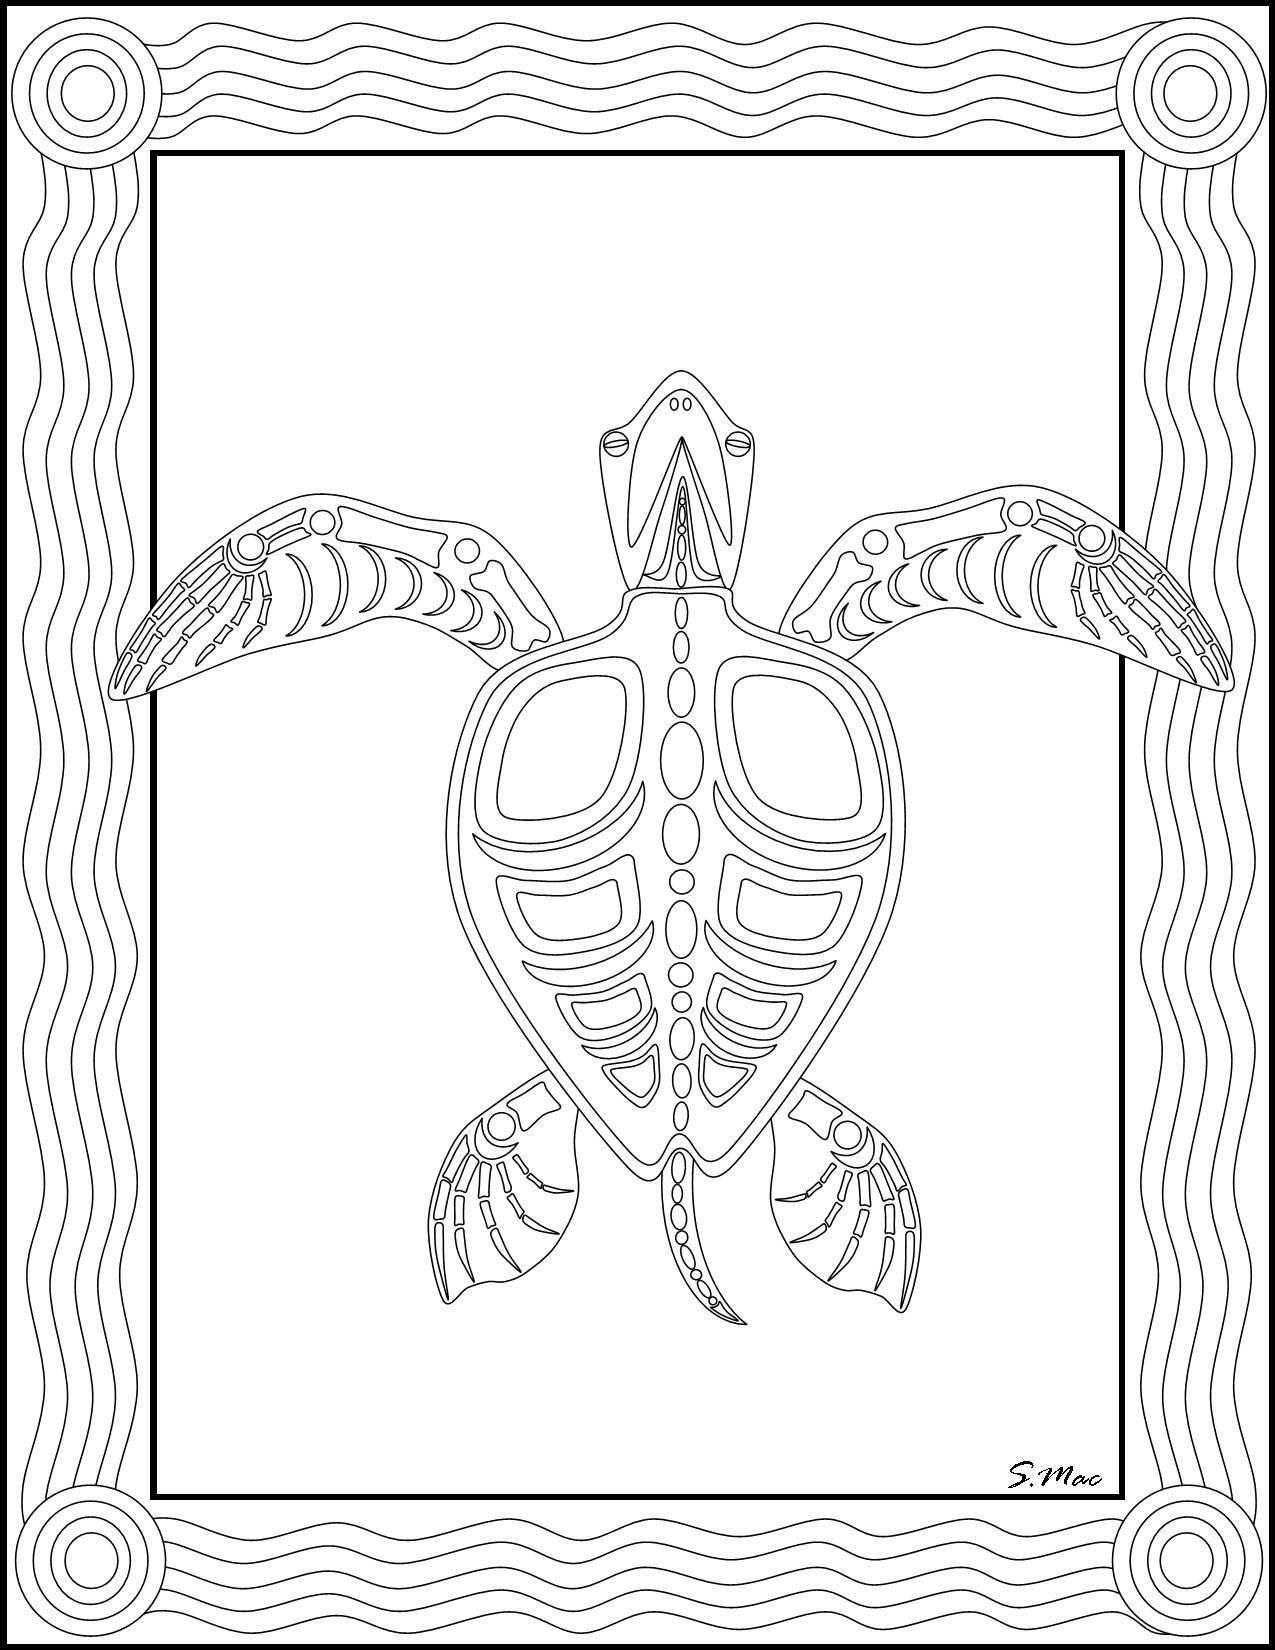 16 Xray Coloring Page Xray Art Aboriginal Art Animals Coloring Pages